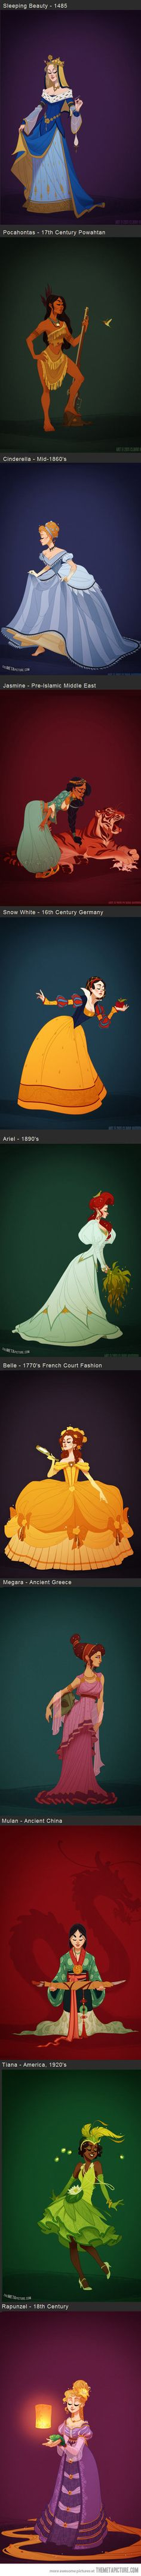 Disney Princesses in accurate period costume